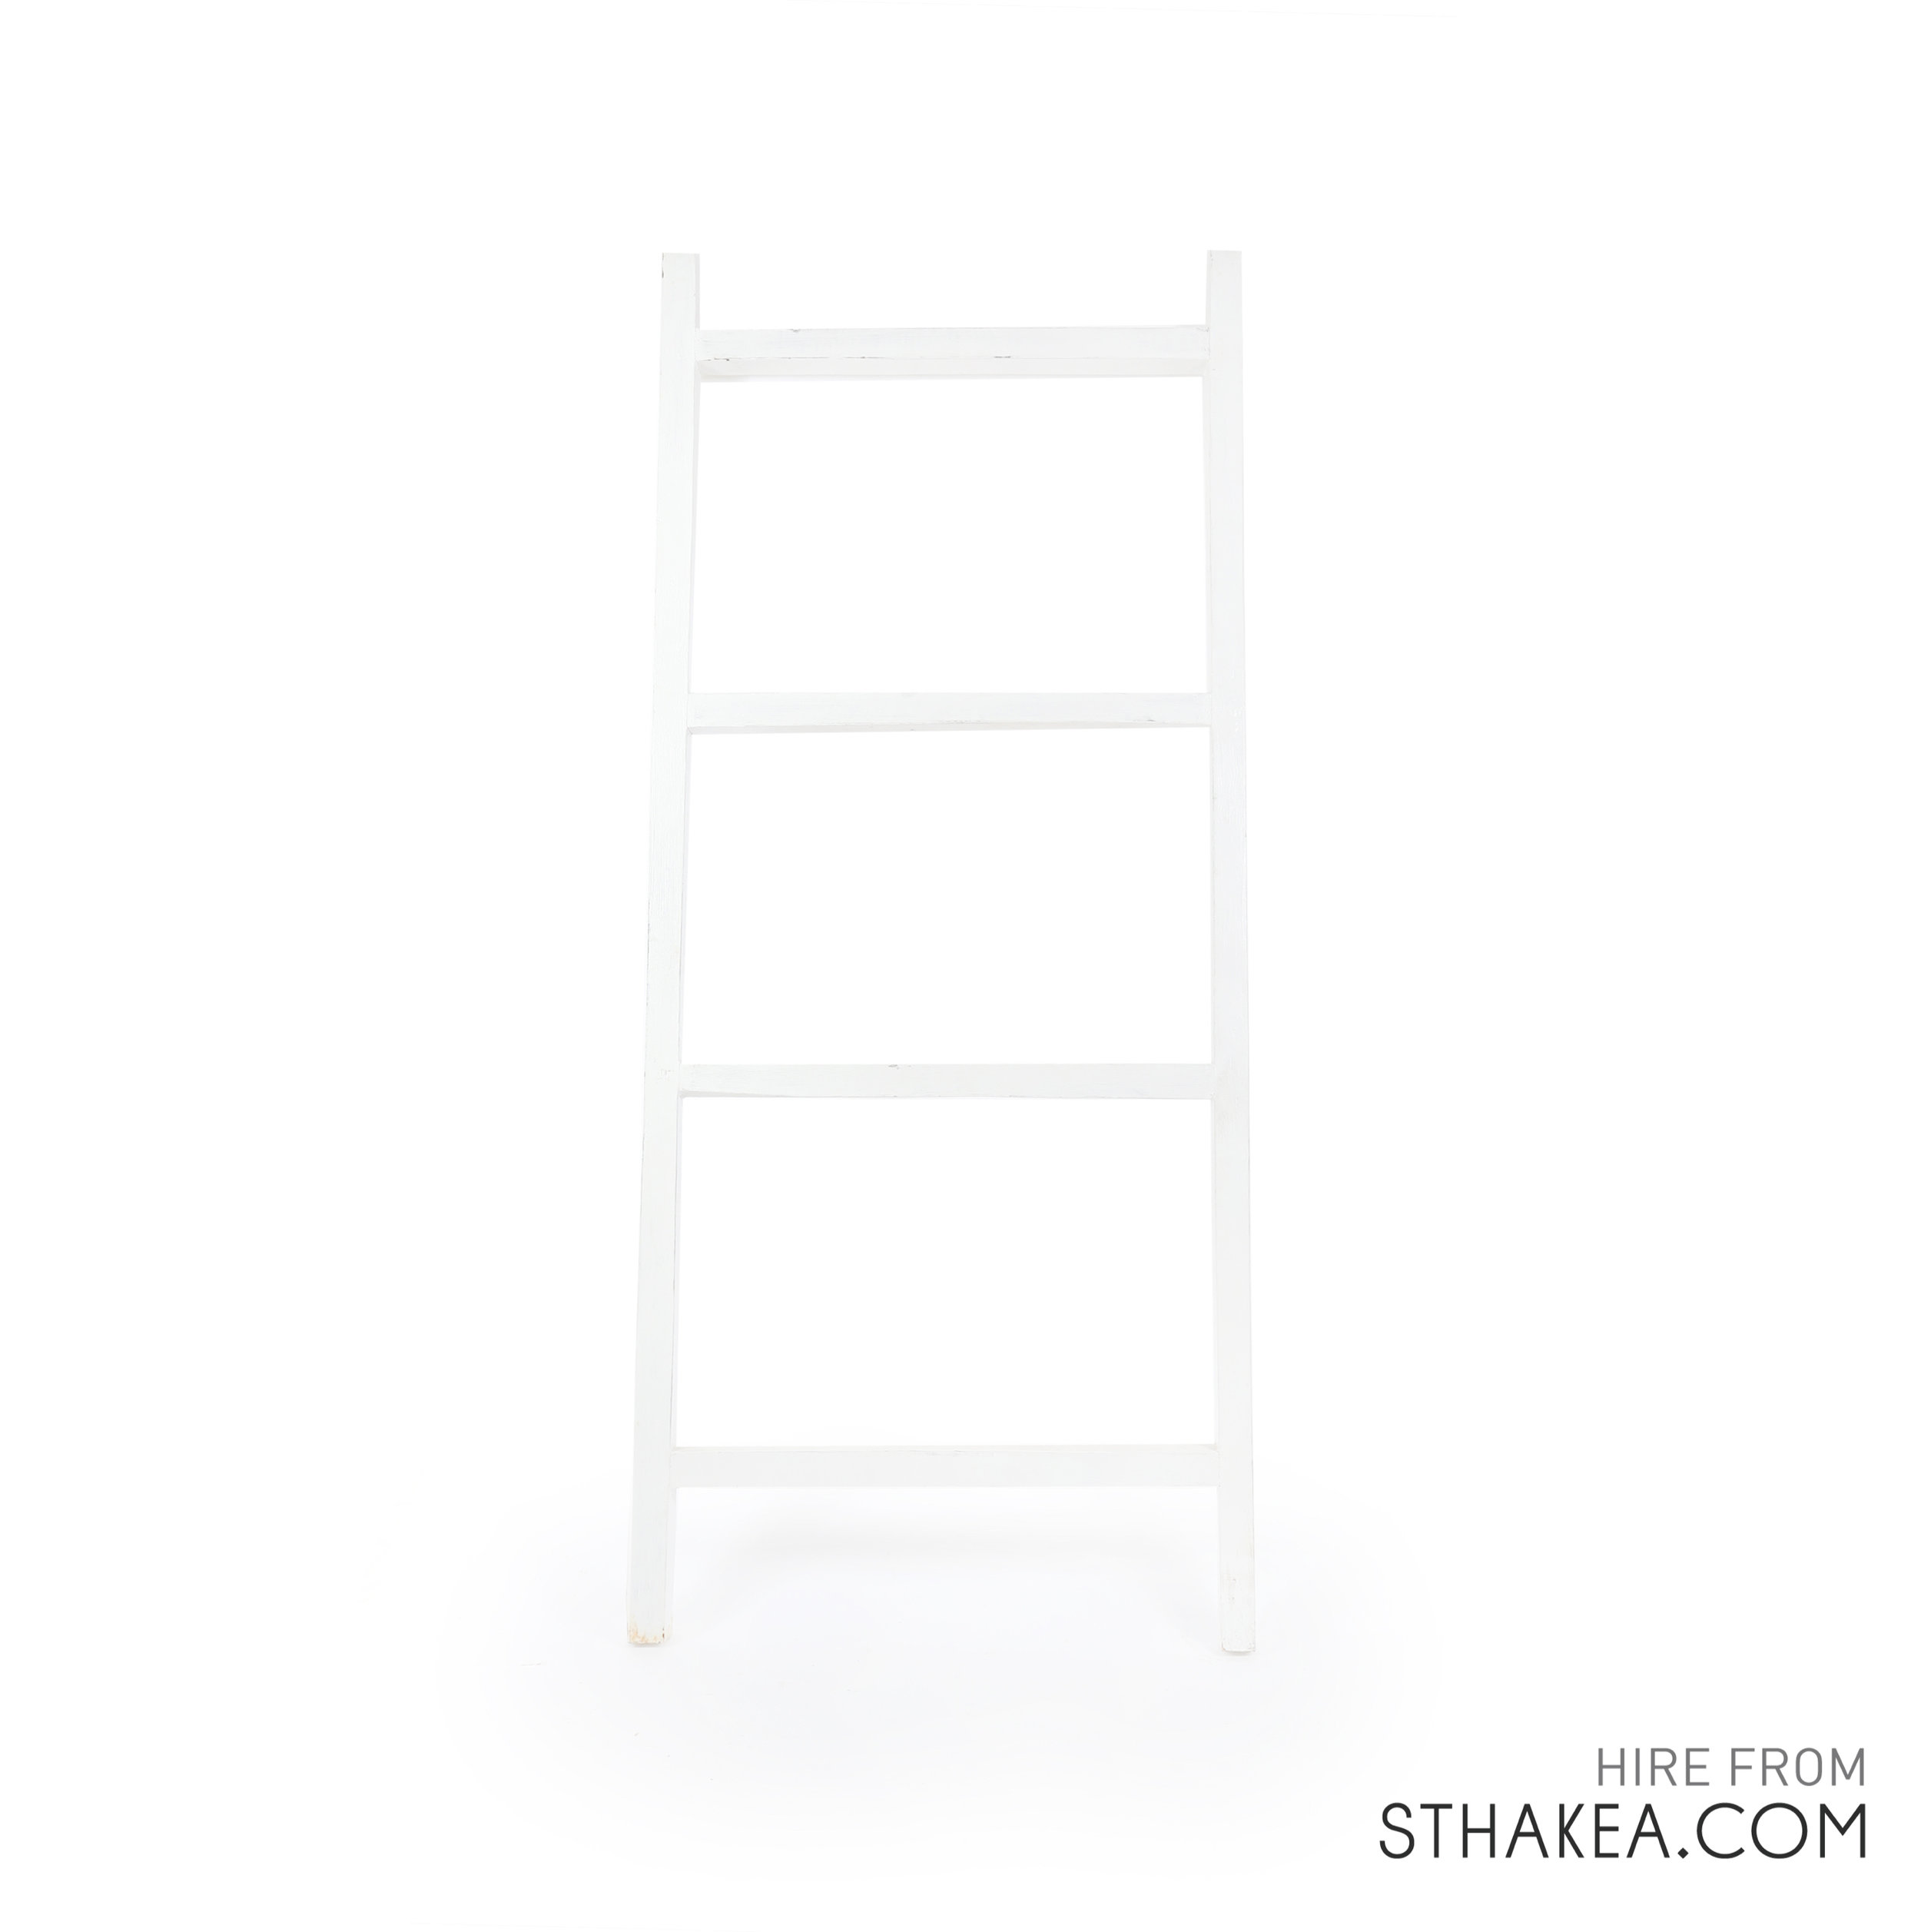 St Hakea Melbourne Event Hire White Leaning Ladder.jpg